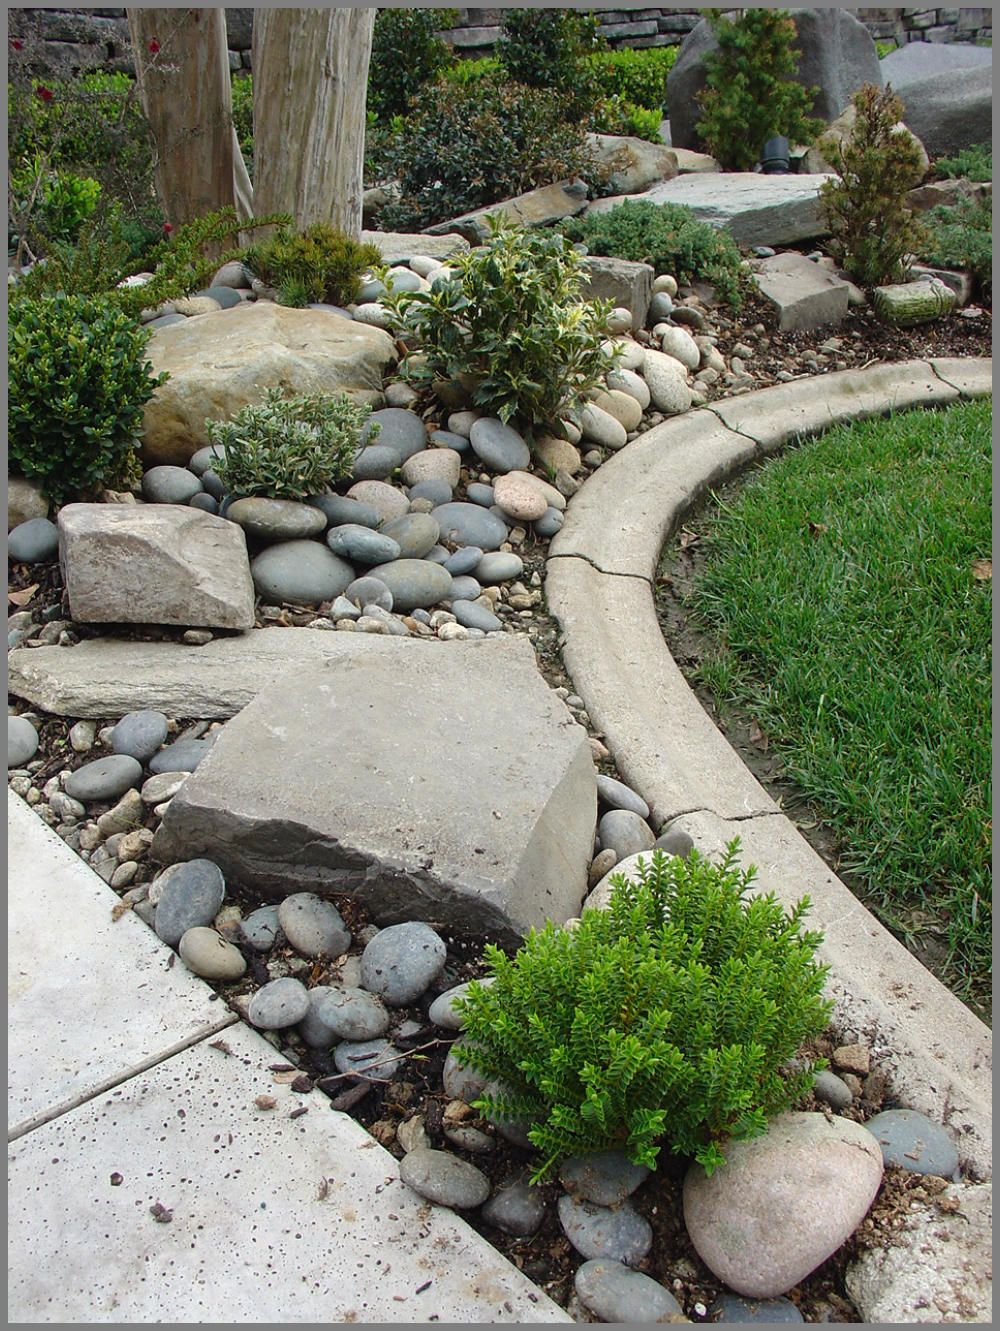 Rock Landscaping Design Ideas rock garden design picture inspire landscaping ideas Junipers Holly Boxwood And Boxleaf Euonymous Give His River Rock Beach Pebble And Rock Garden Designgarden Design Plansdriveway